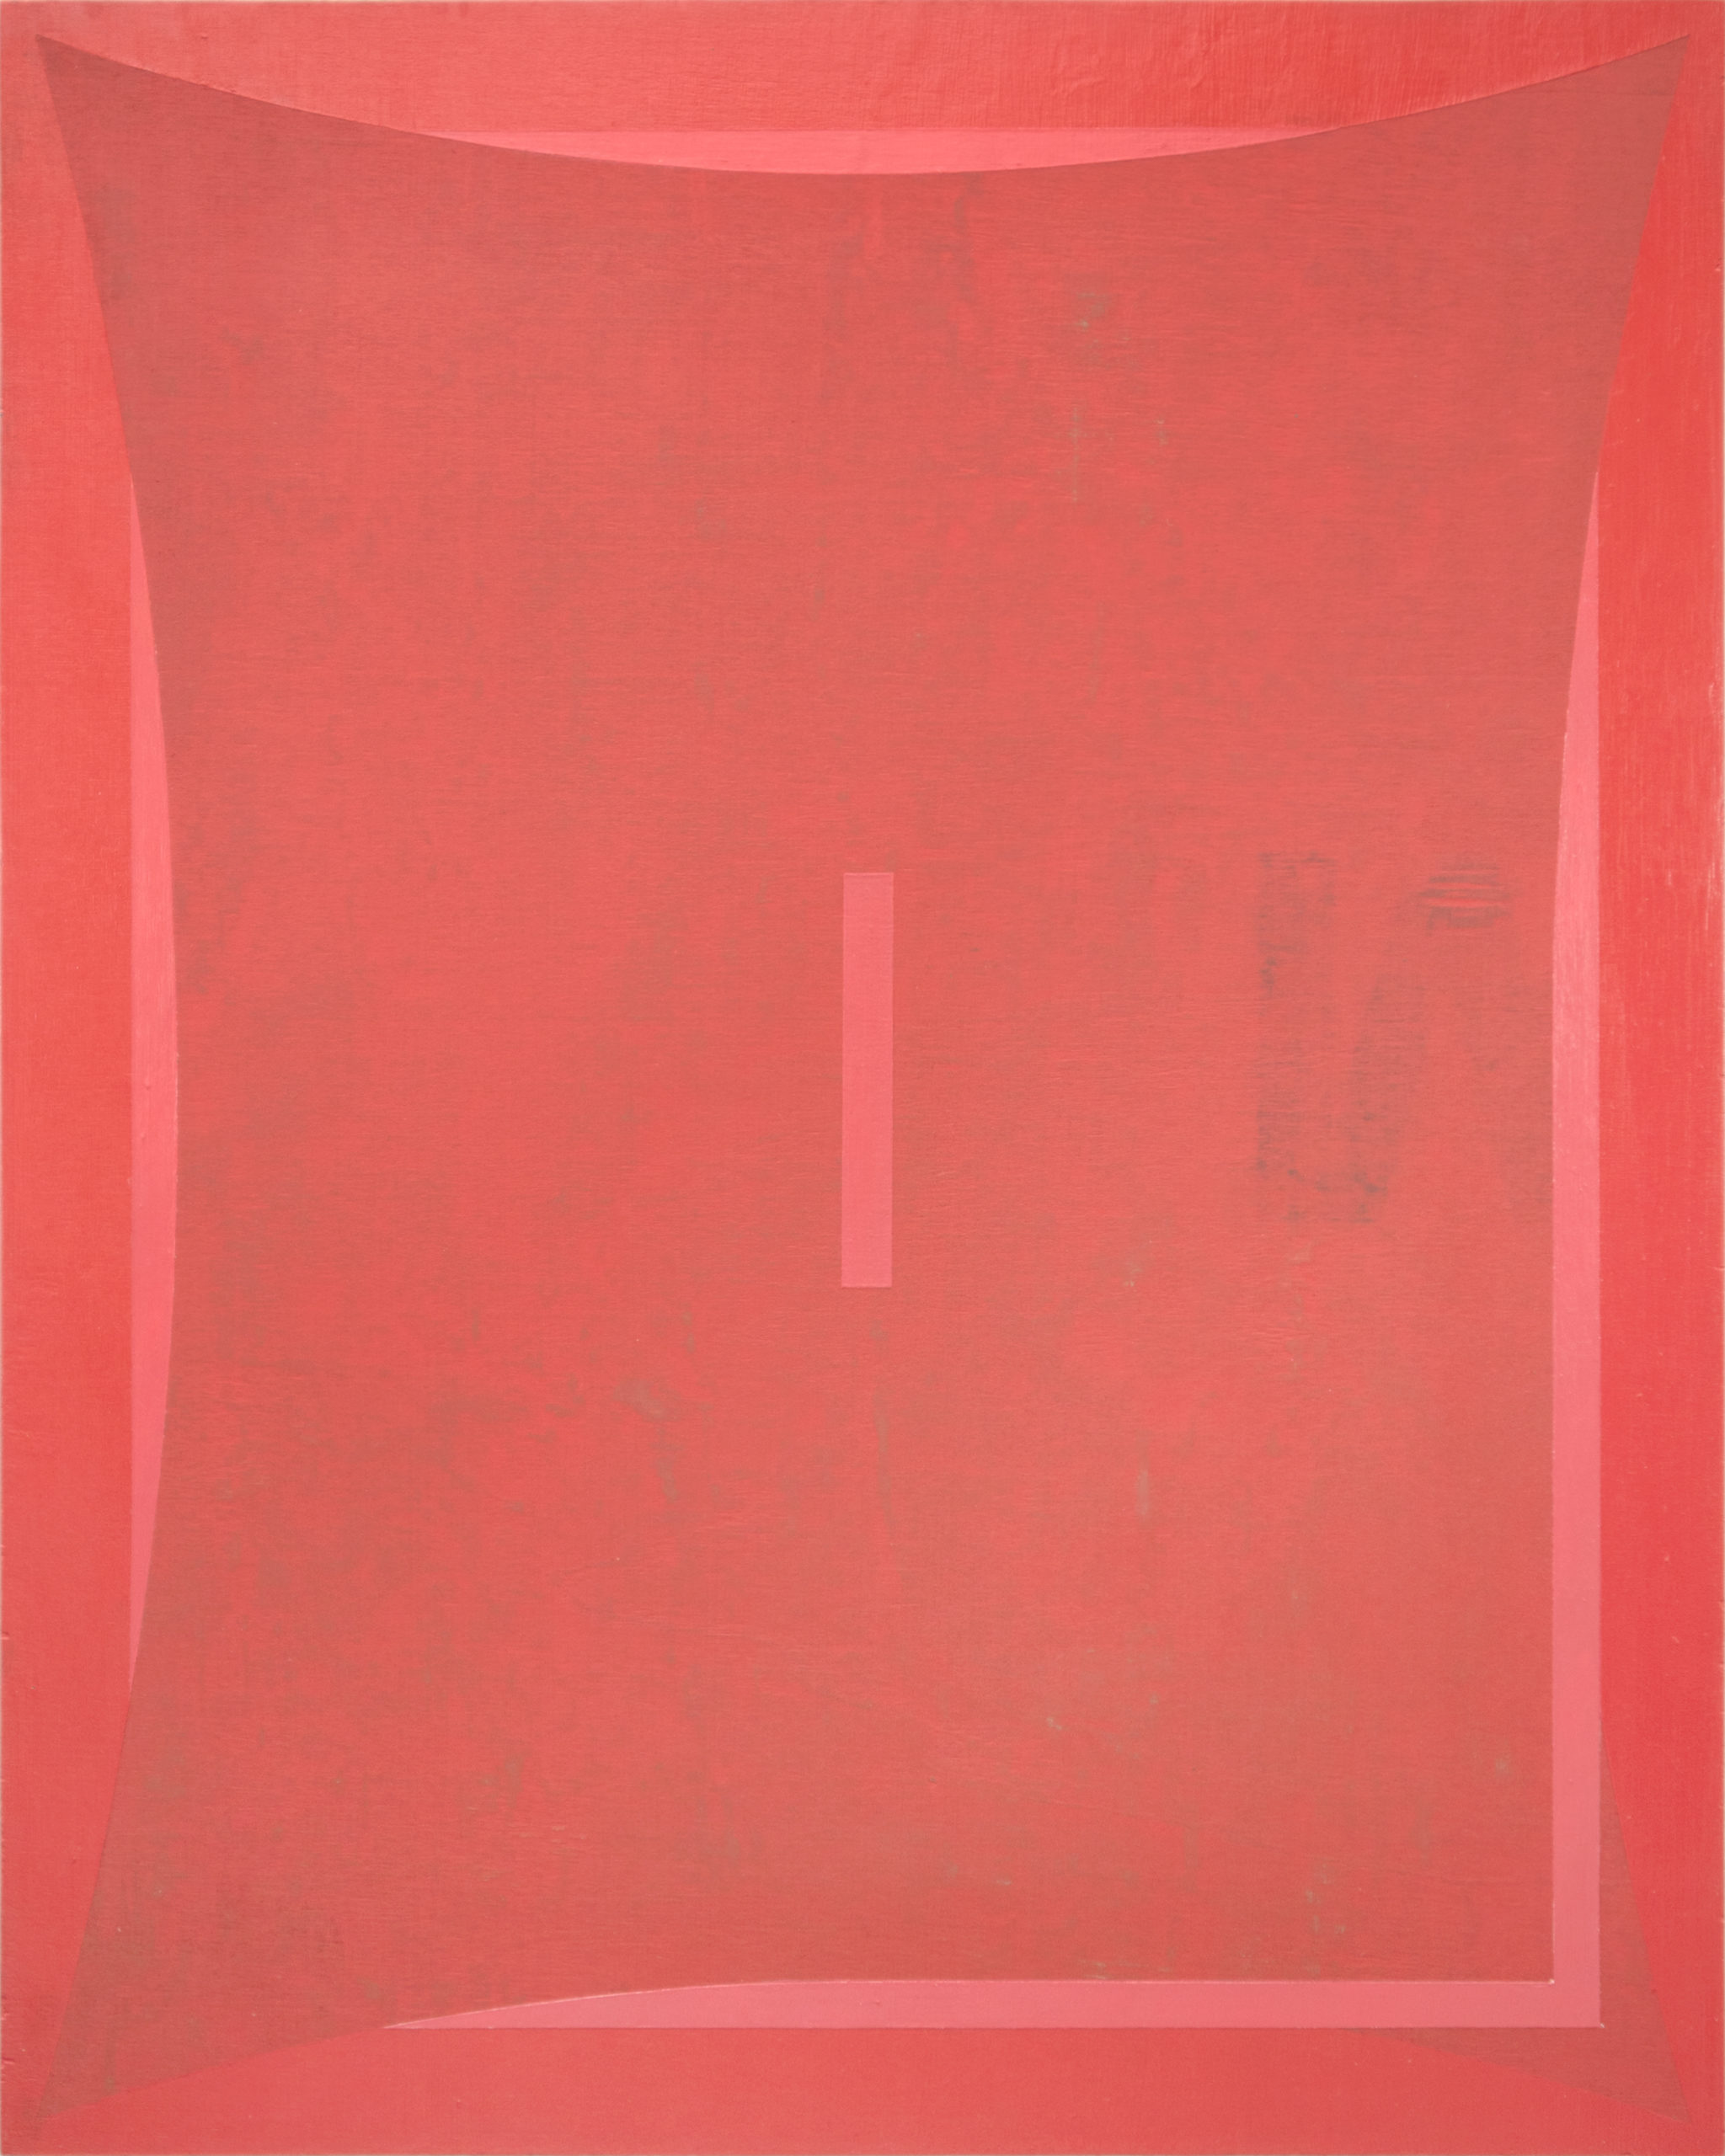 Untitled (Rust and Pink)